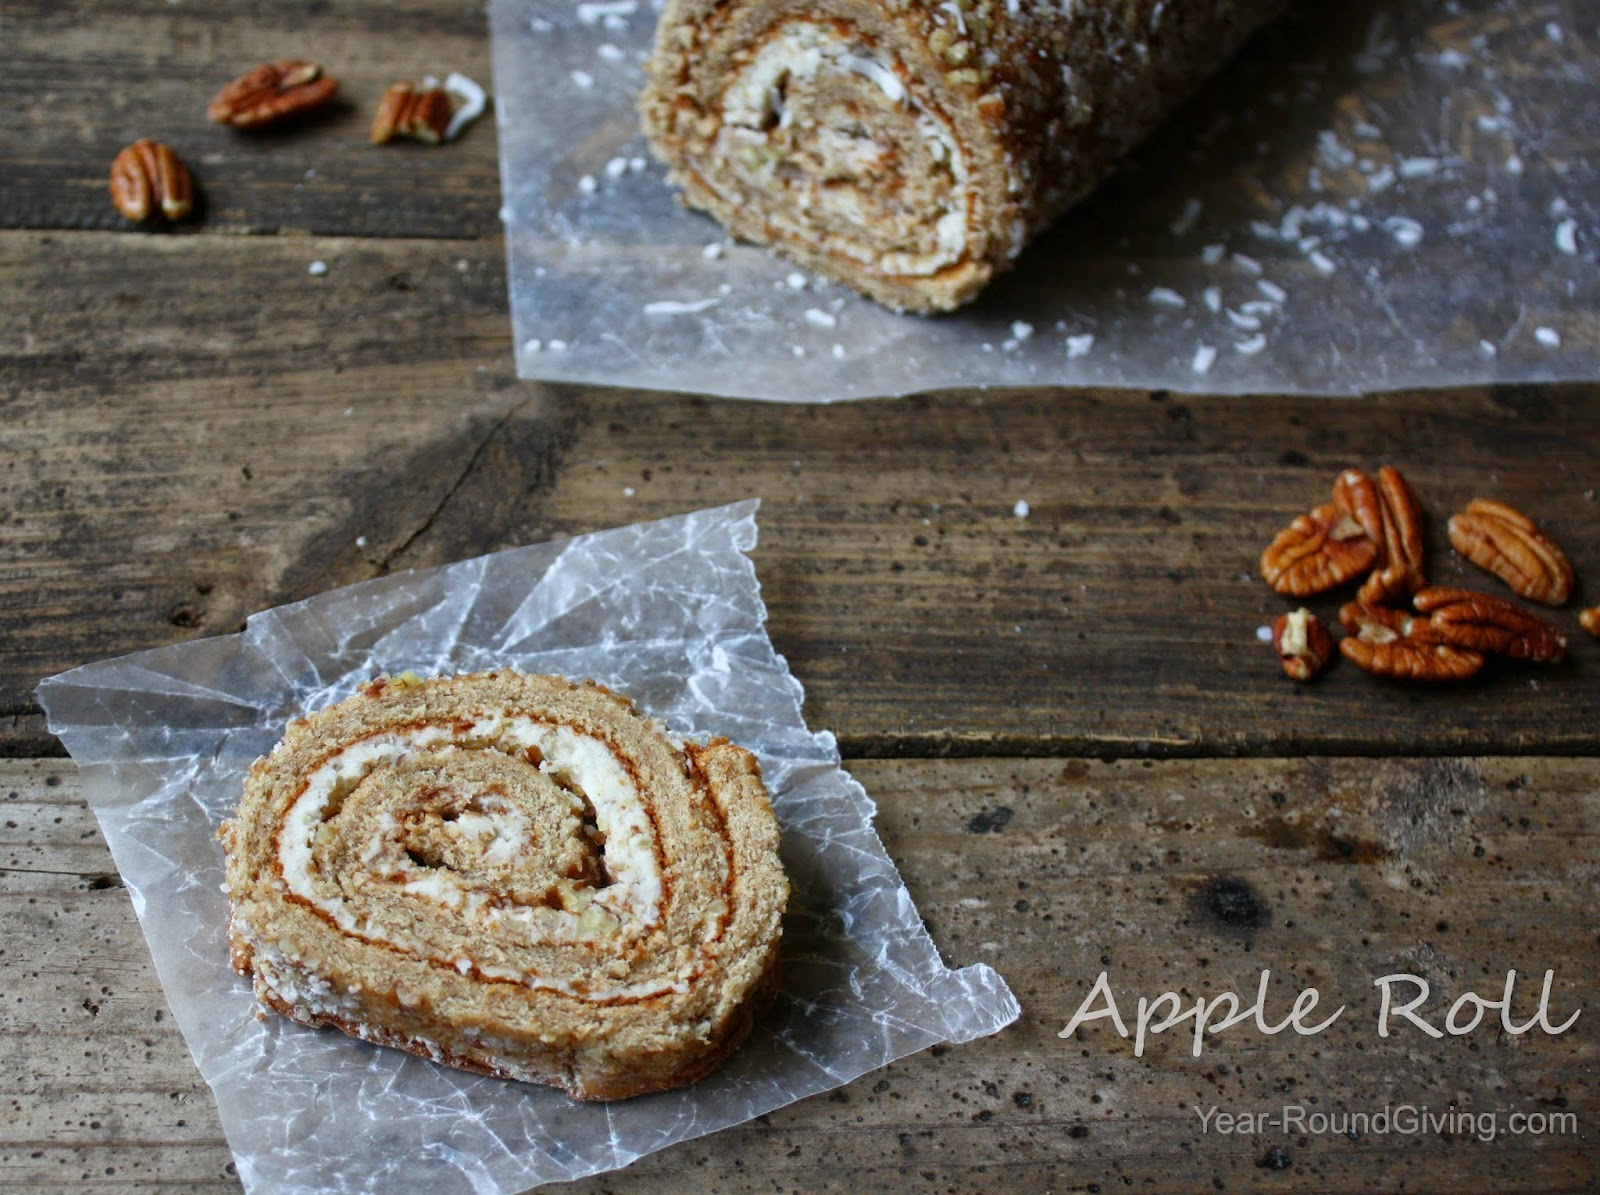 Apple Roll - Apple cake rolled with cream cheese pecans and coconut.